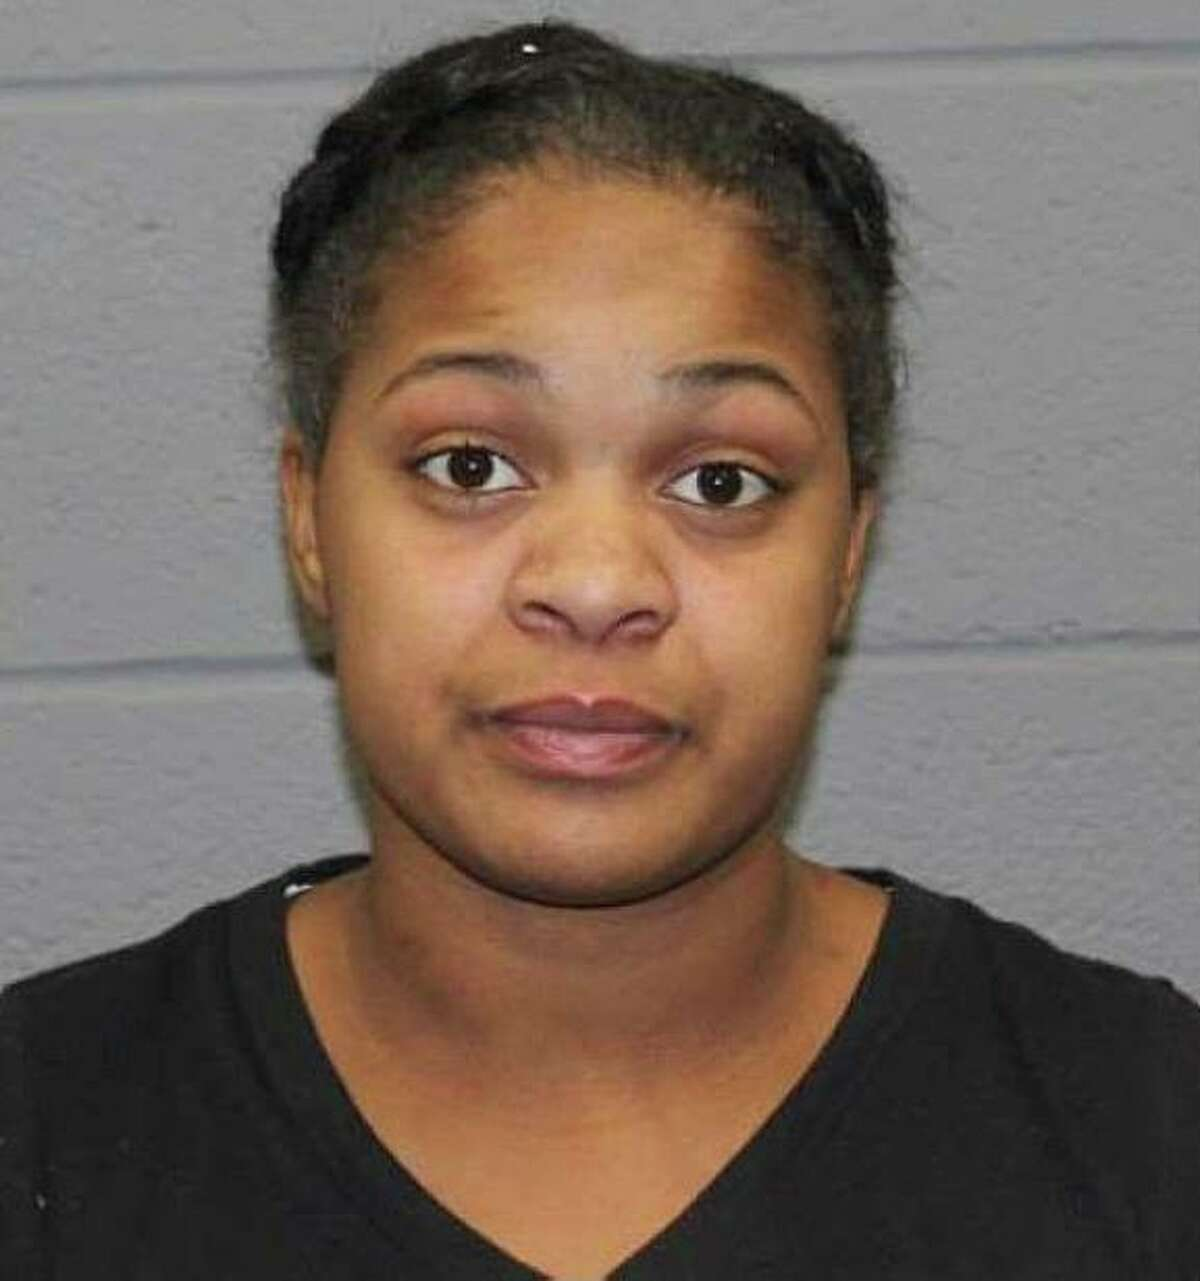 Shavonnah Draper, 26, of Yarrington Court in Bridgeport, Conn., was charged Friday, Dec. 13, 2019, with felony murder and conspiracy at felony murder.